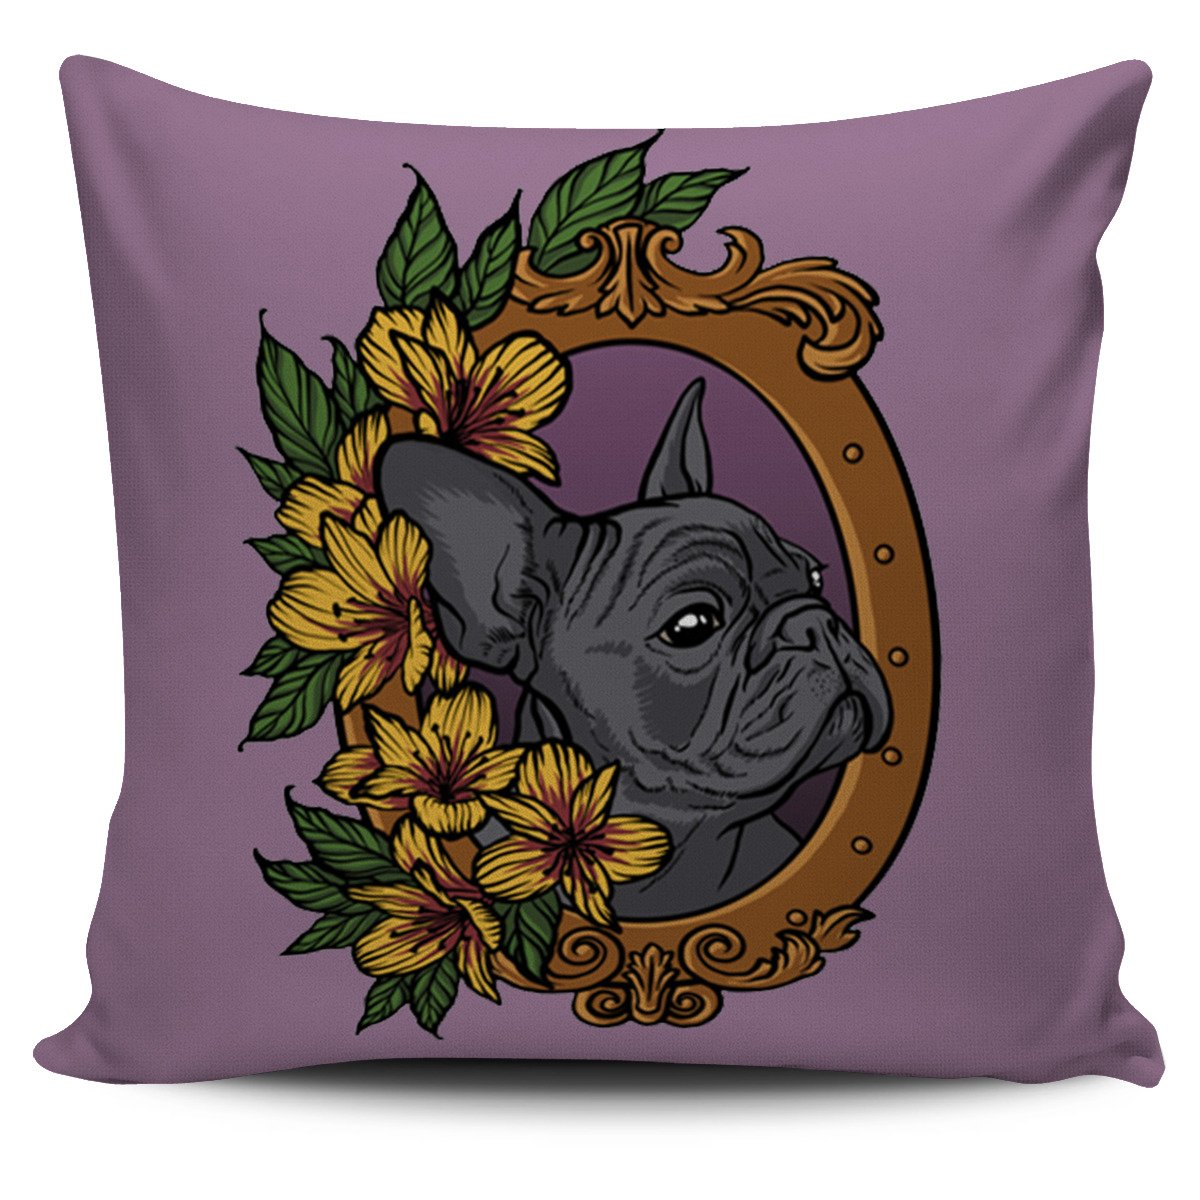 Sophie - Pillow - Frenchie Bulldog Shop